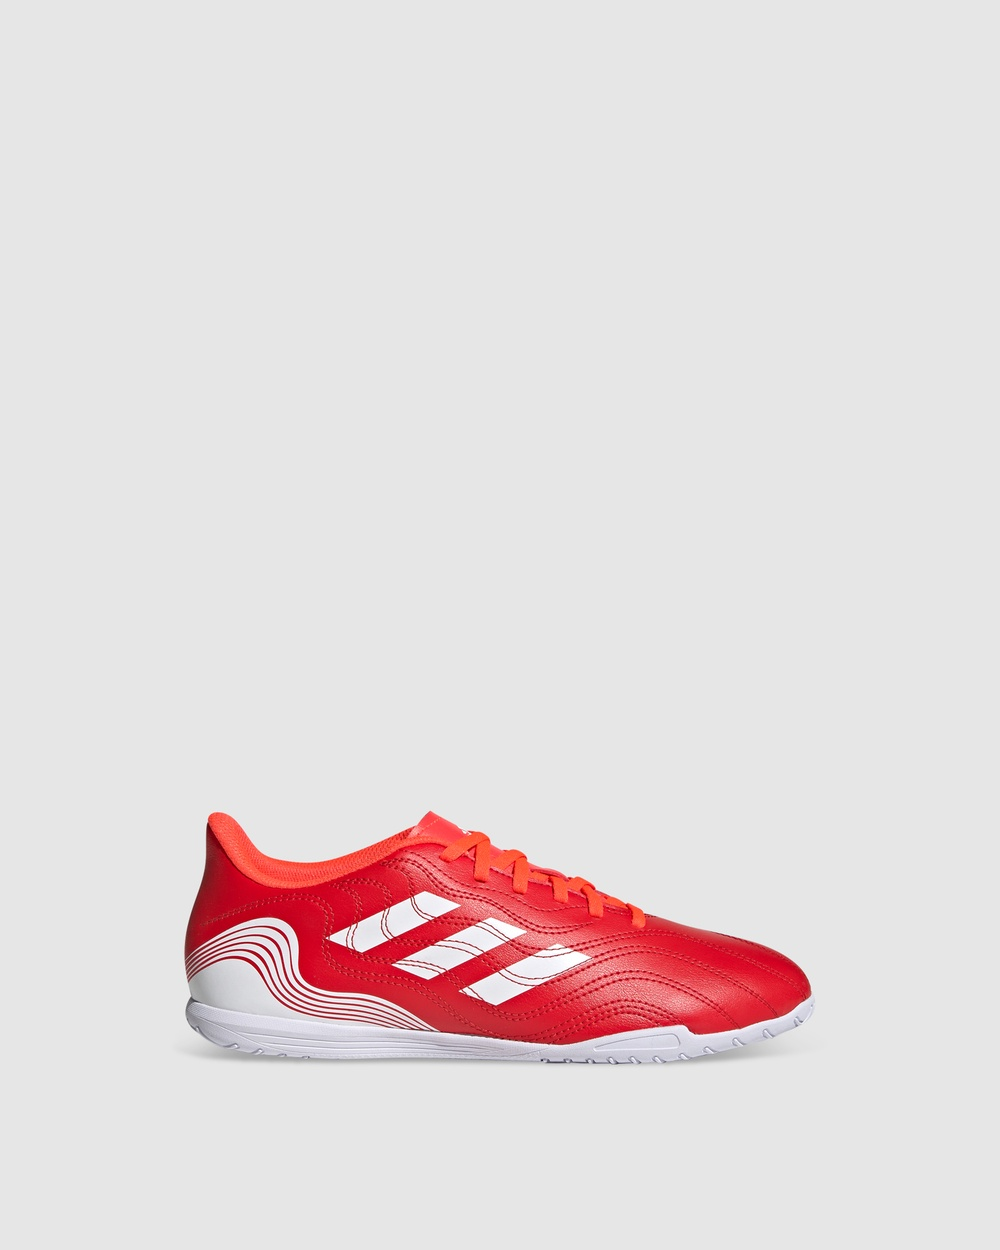 adidas Performance Copa Sense.4 Indoor Boots Shoes Red